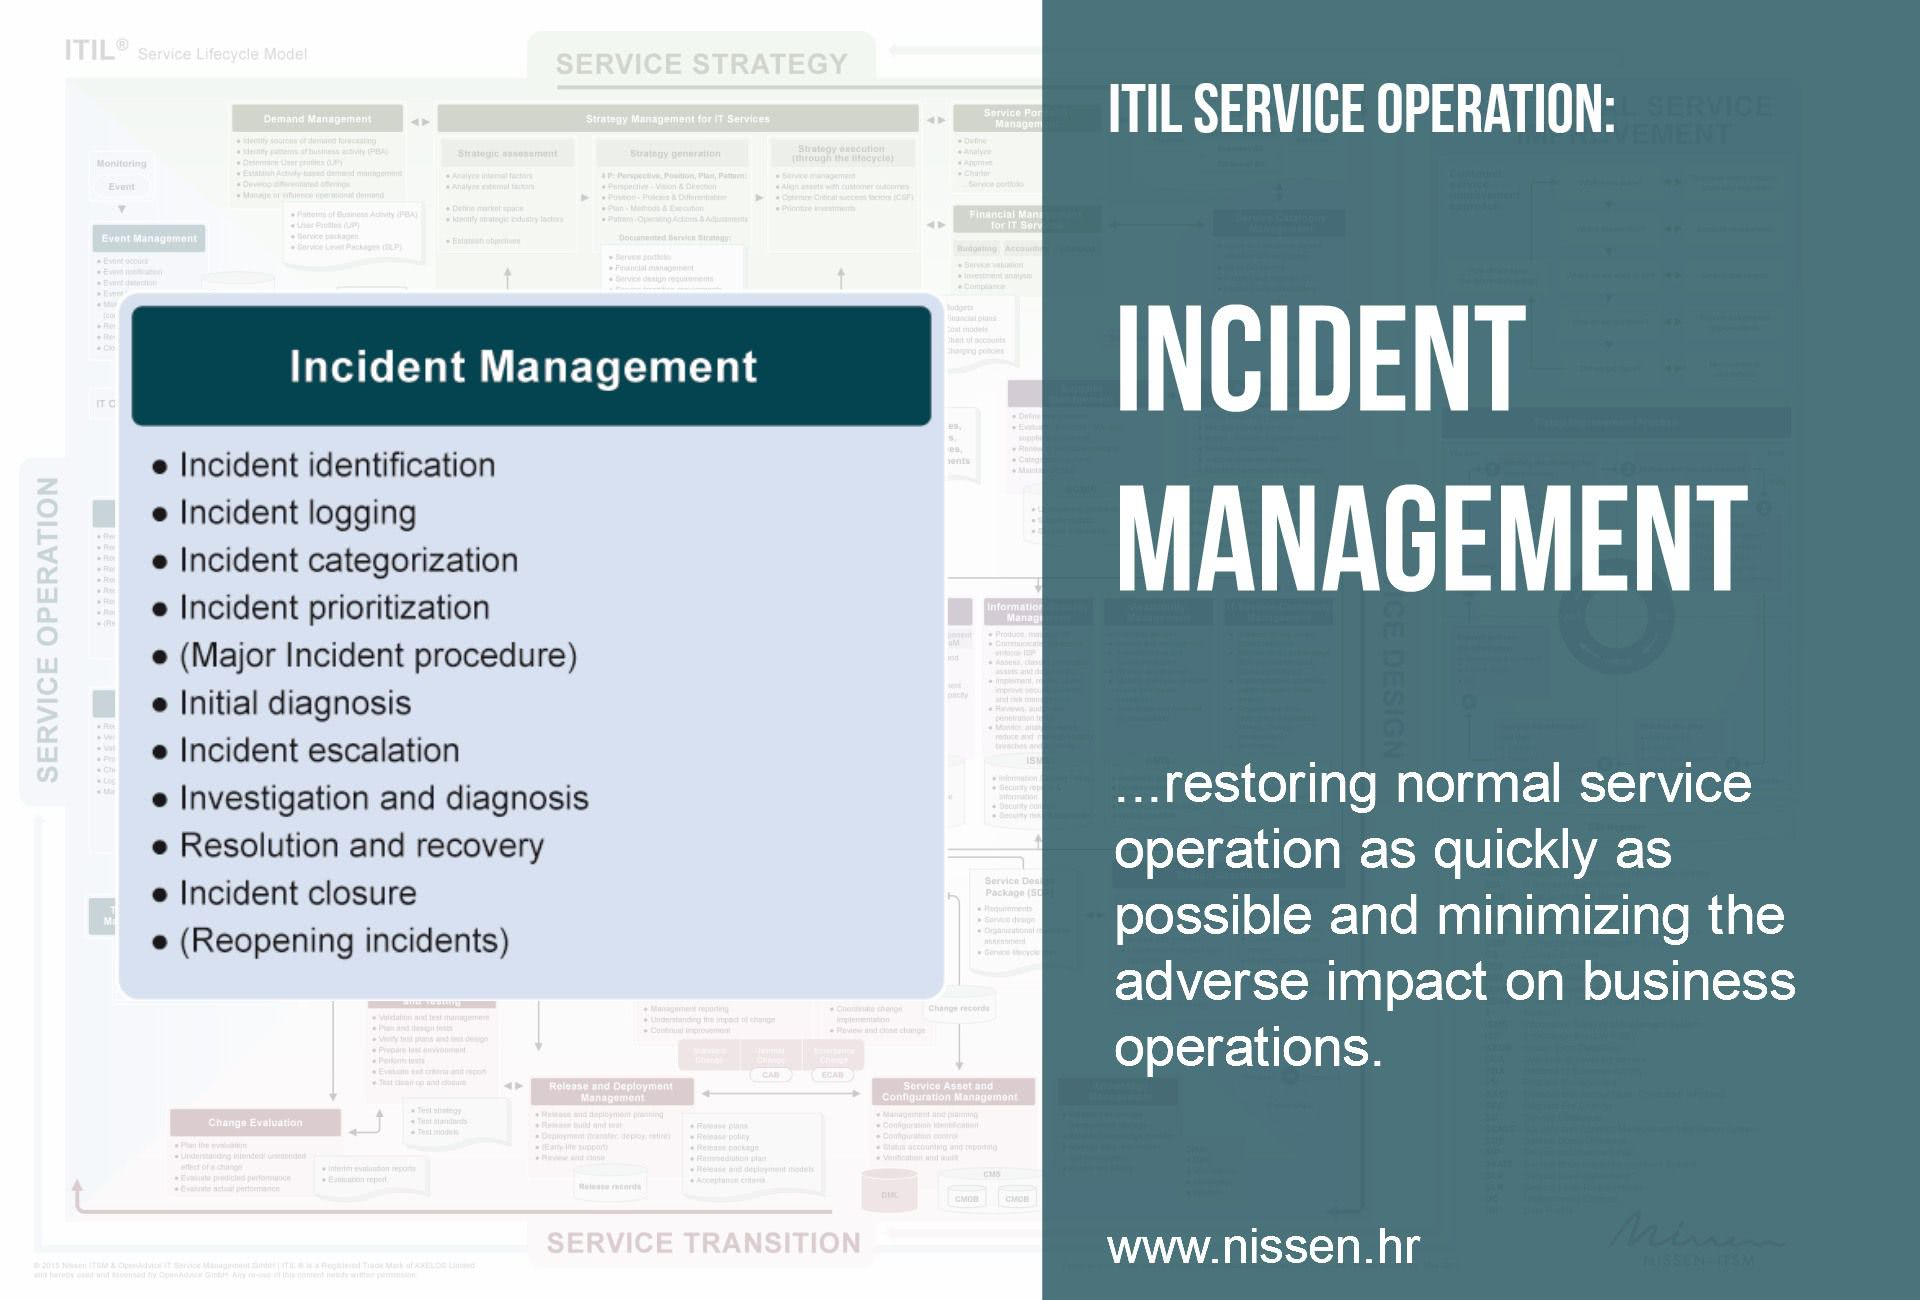 ITS Poster - Incident Management